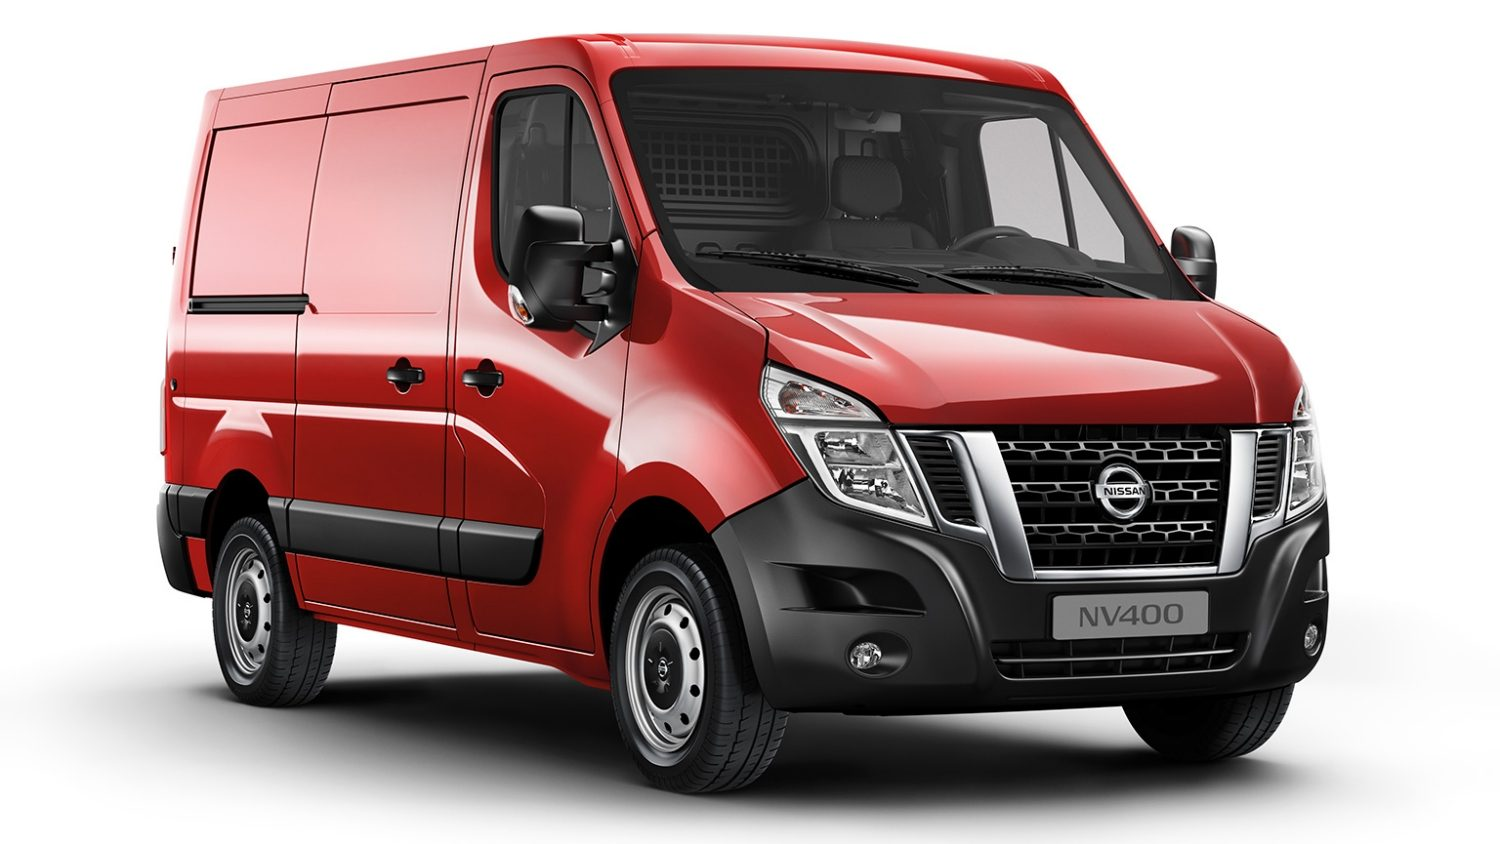 Nissan NV400 Van Working Star - 3/4 front view